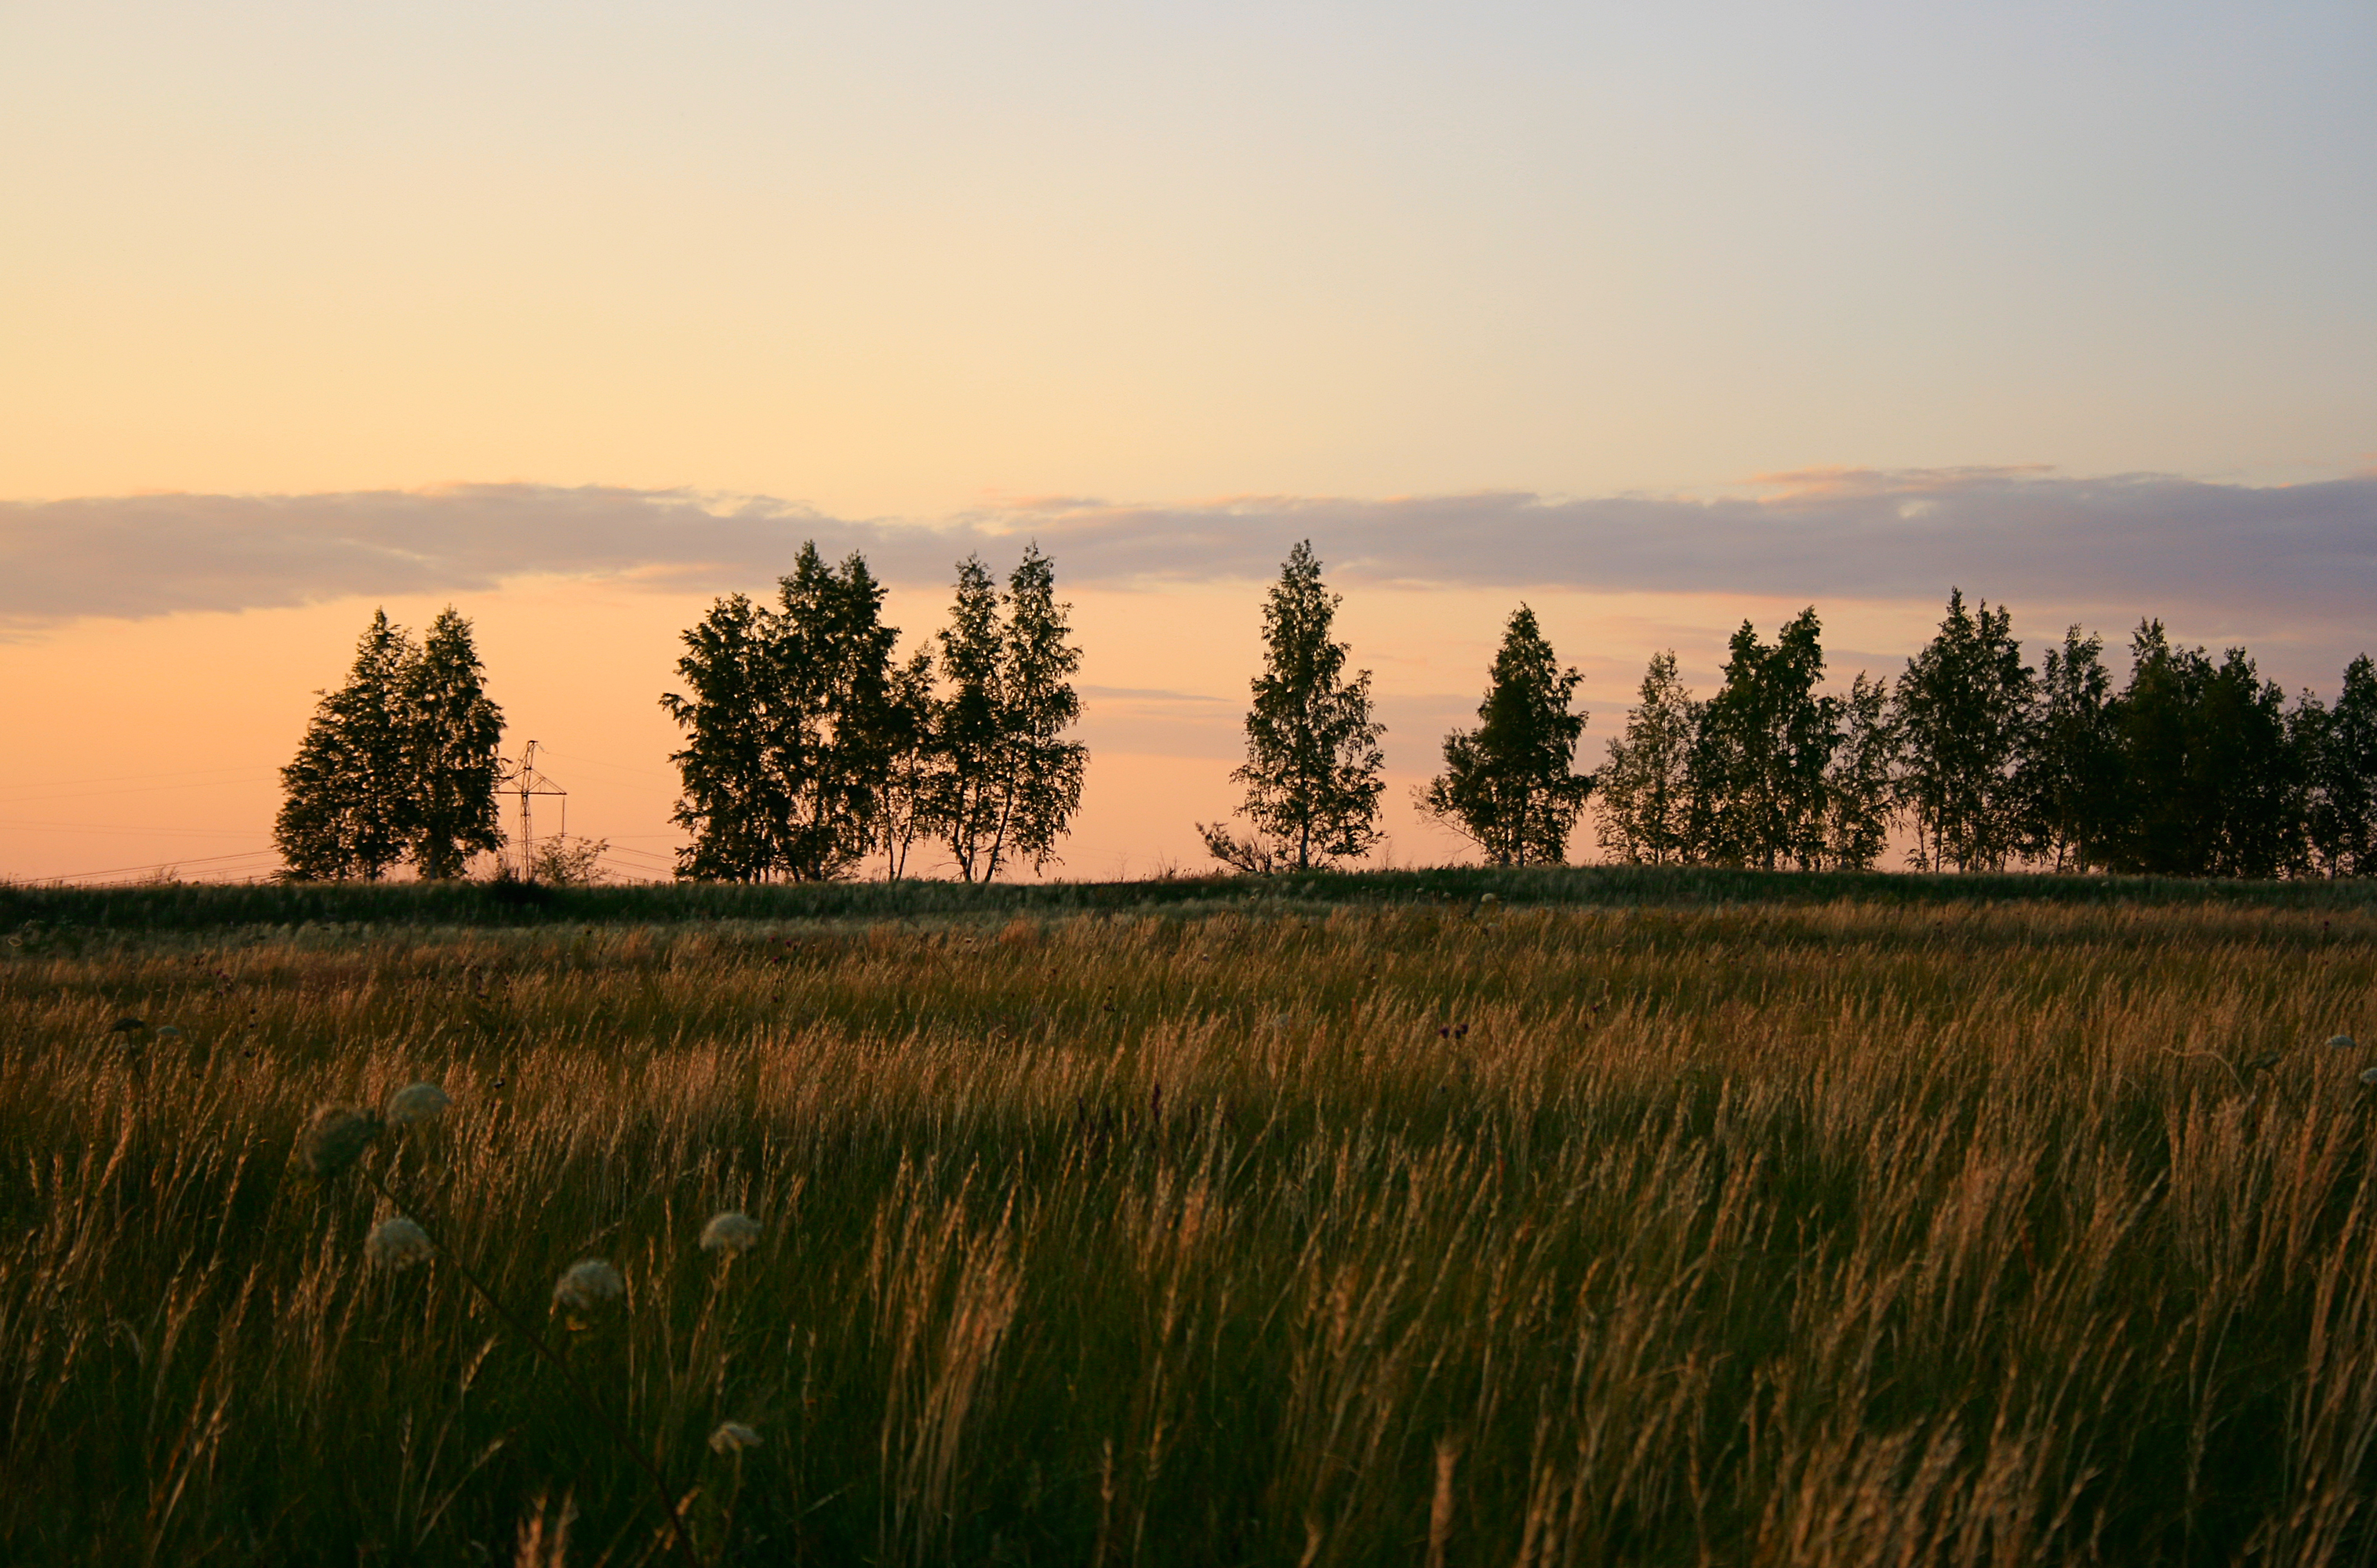 trees, Con2011, Countryside, Landscape, Nature, HQ Photo